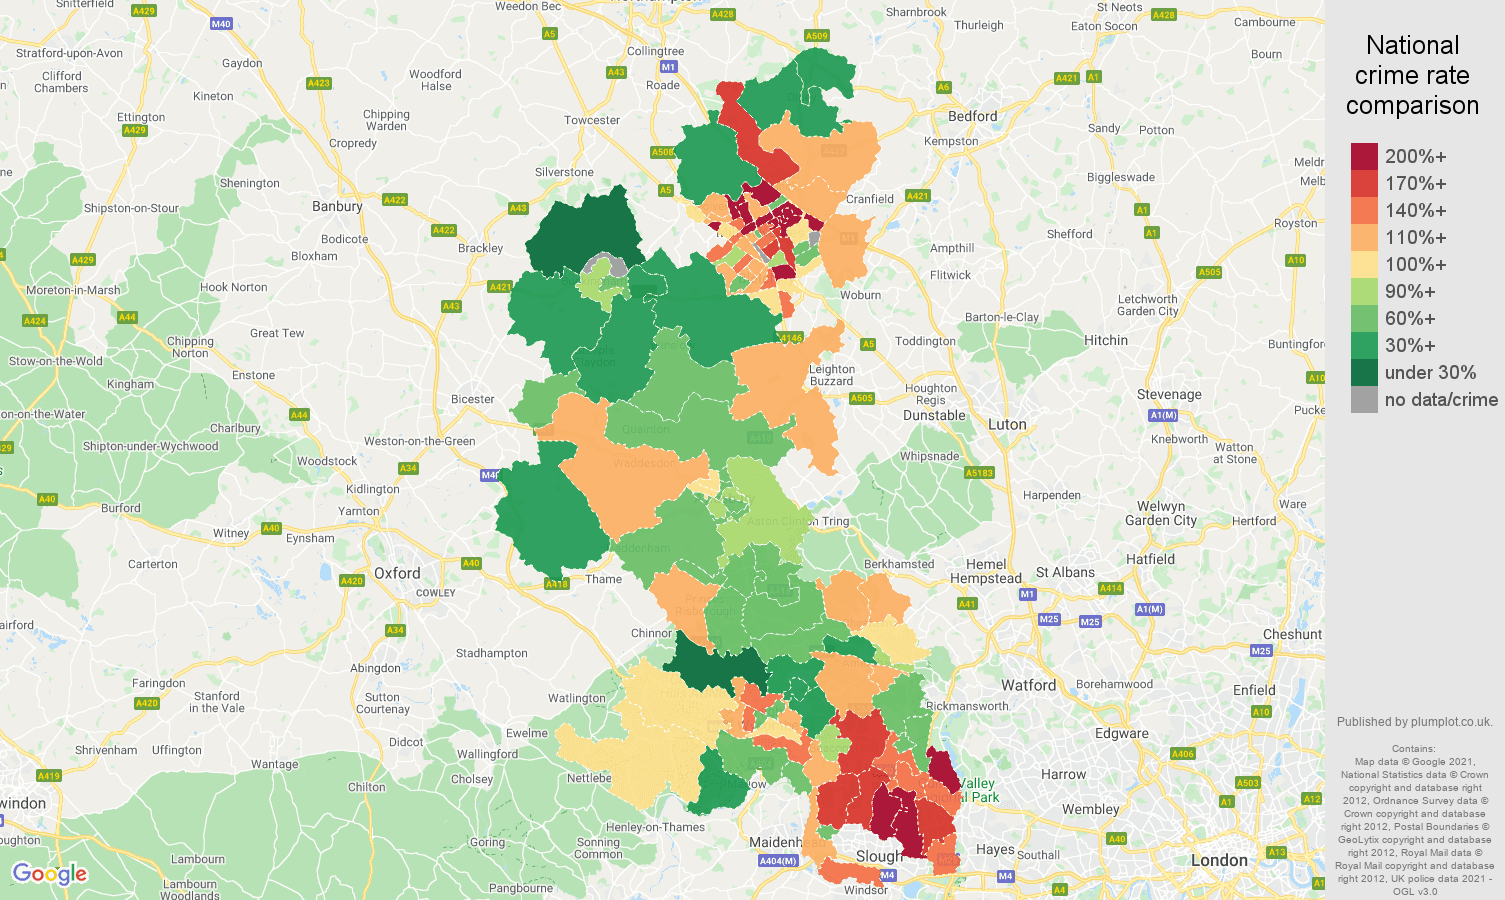 Buckinghamshire vehicle crime rate comparison map